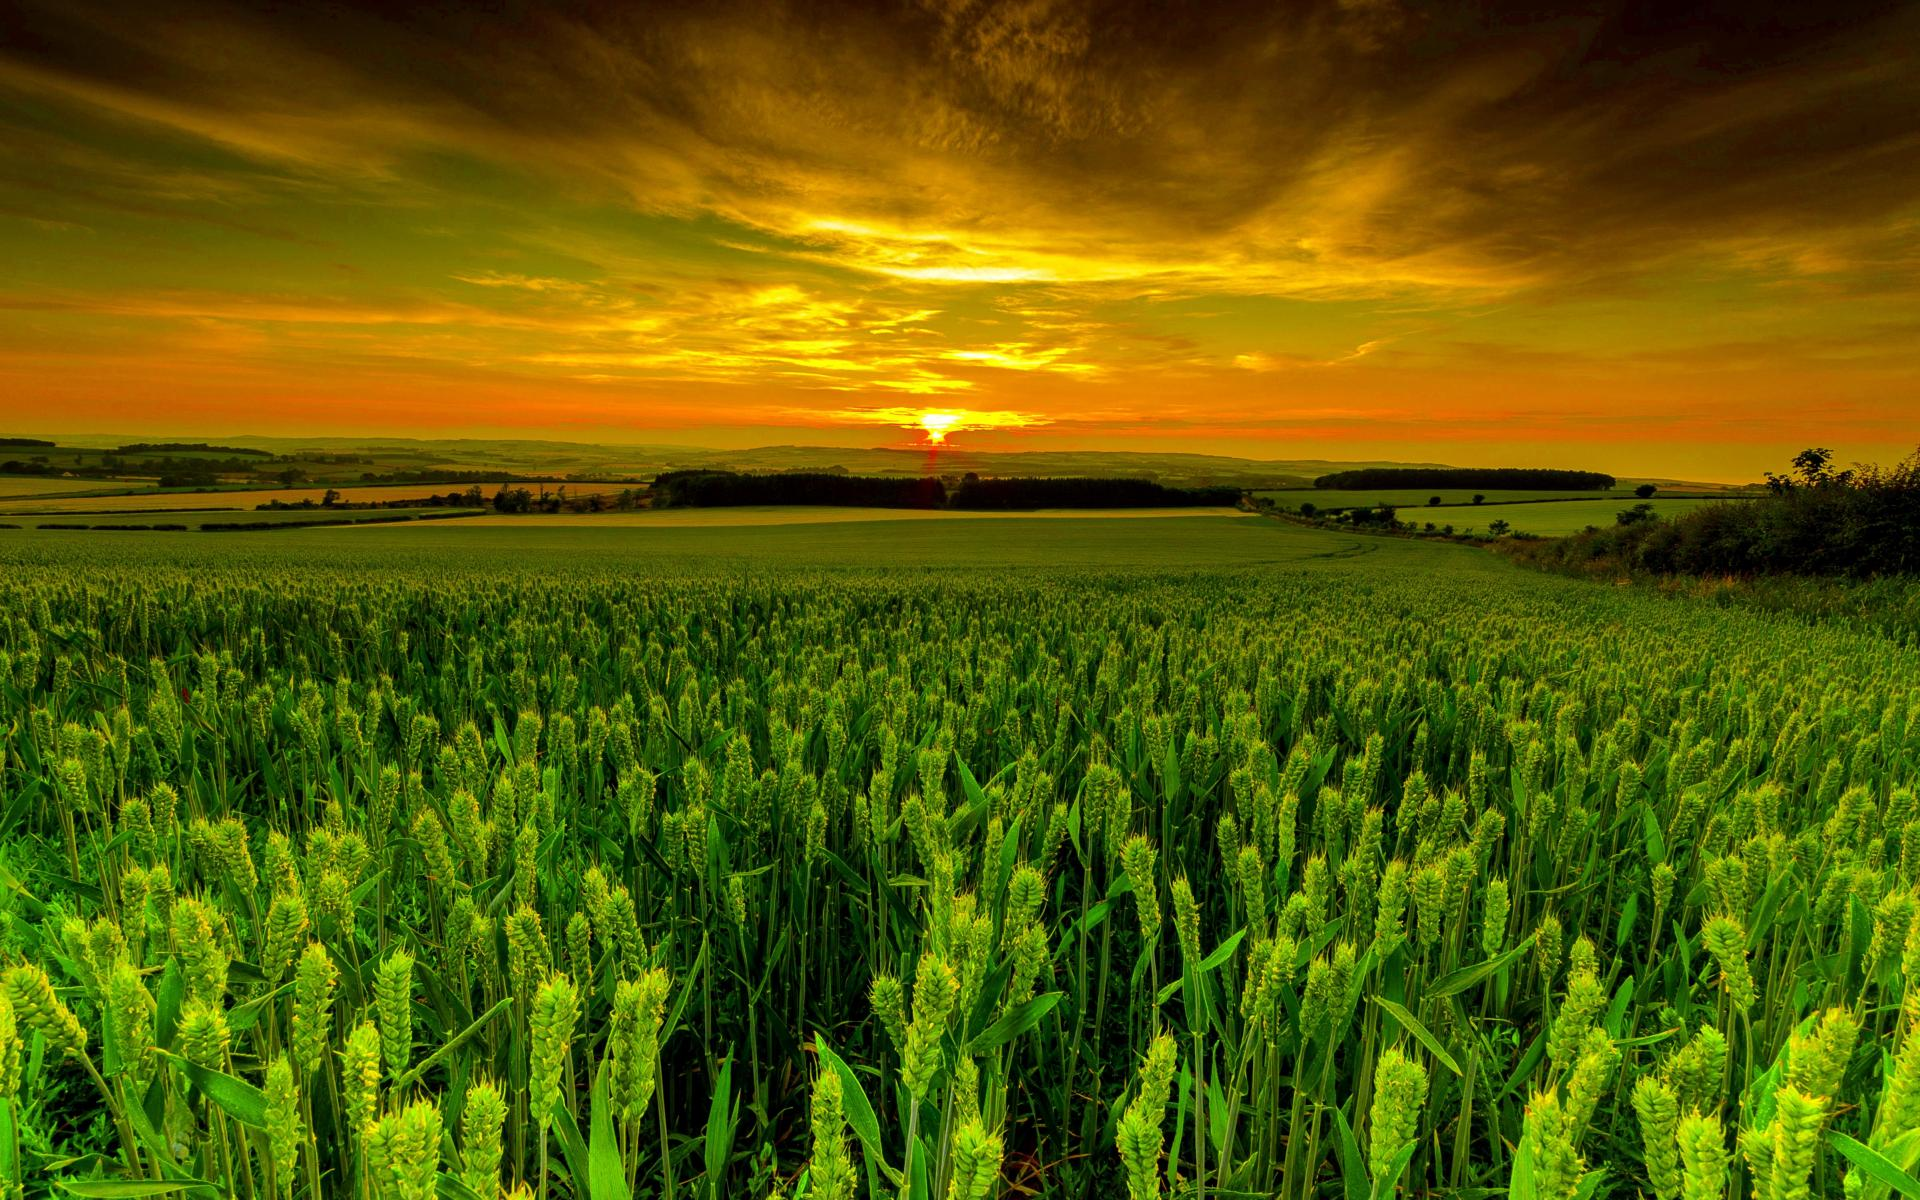 1920x1200_wheat_field_at_dusk-1536053.jpg